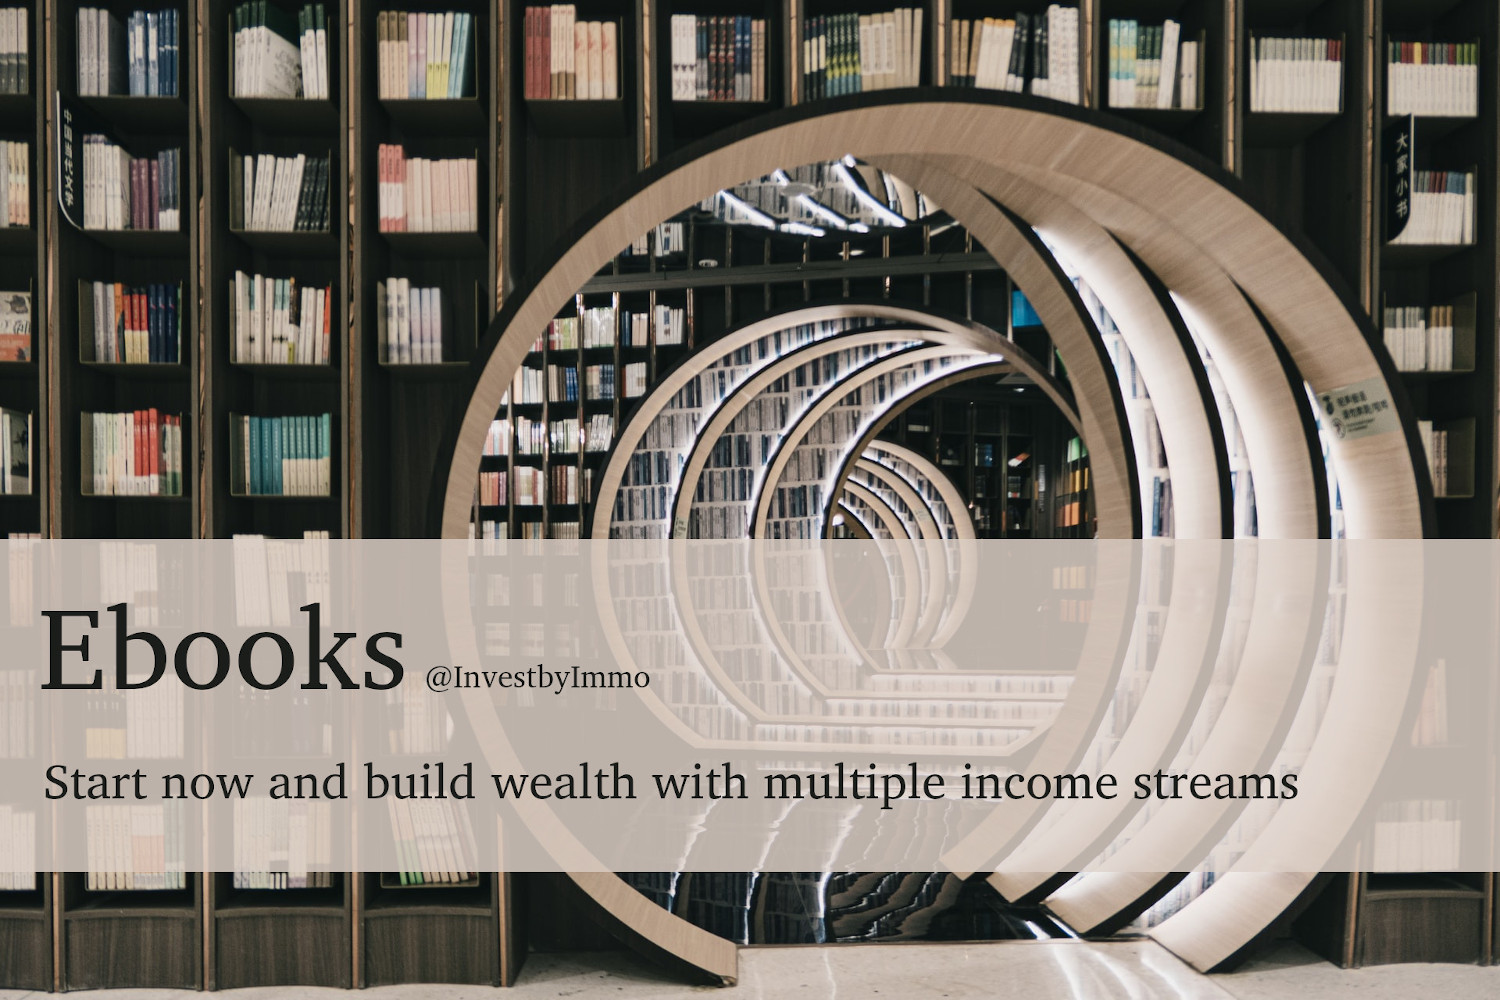 Investby.Immo Ebooks